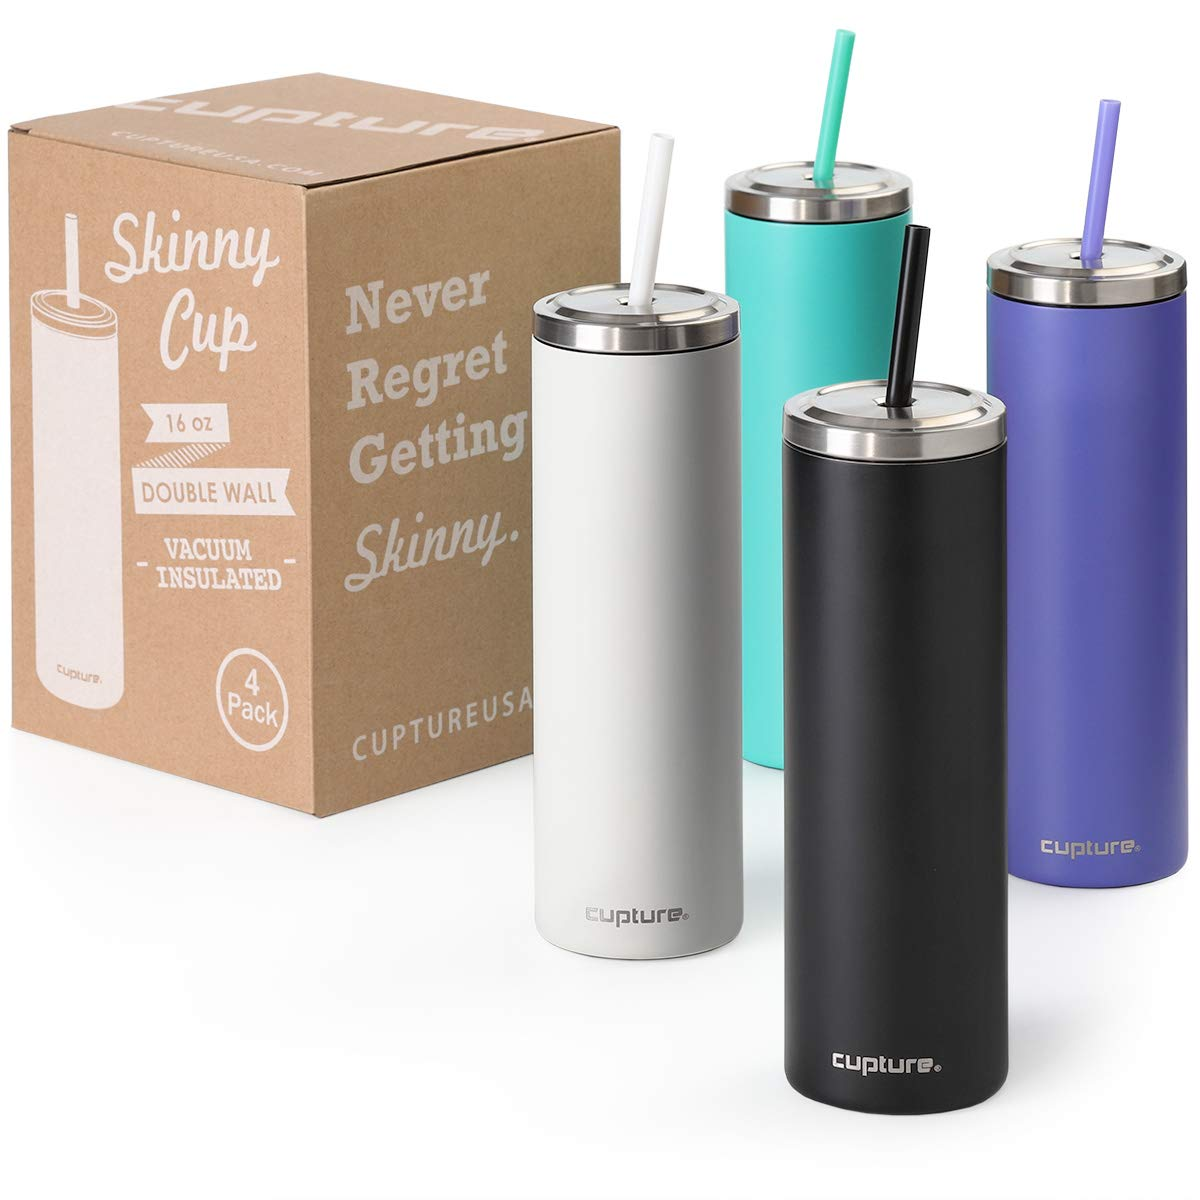 Cupture Stainless Steel Skinny Insulated Tumbler Cup with Lid and Reusable Straw - 16 oz (Assorted Colors)